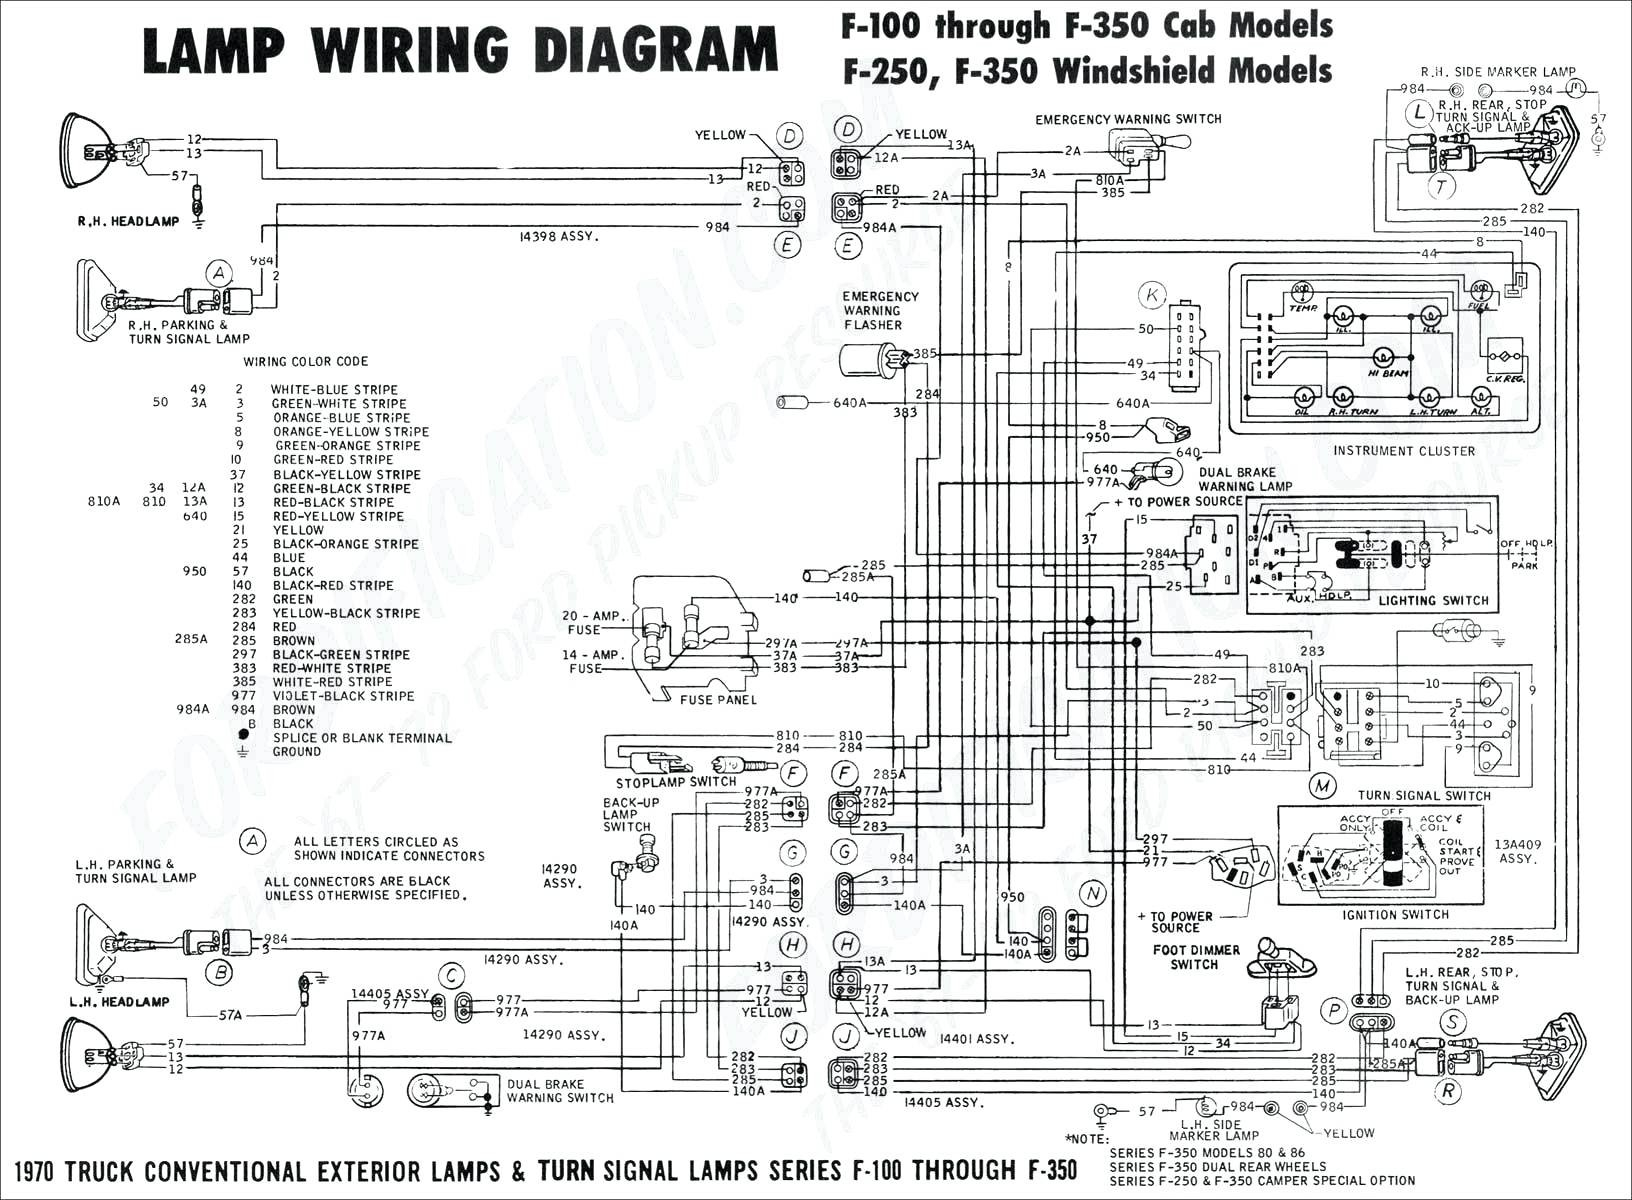 2002 ford excursion wiring diagram Collection-Ford Excursion Wiring S Schematics Prepossessing 4-j